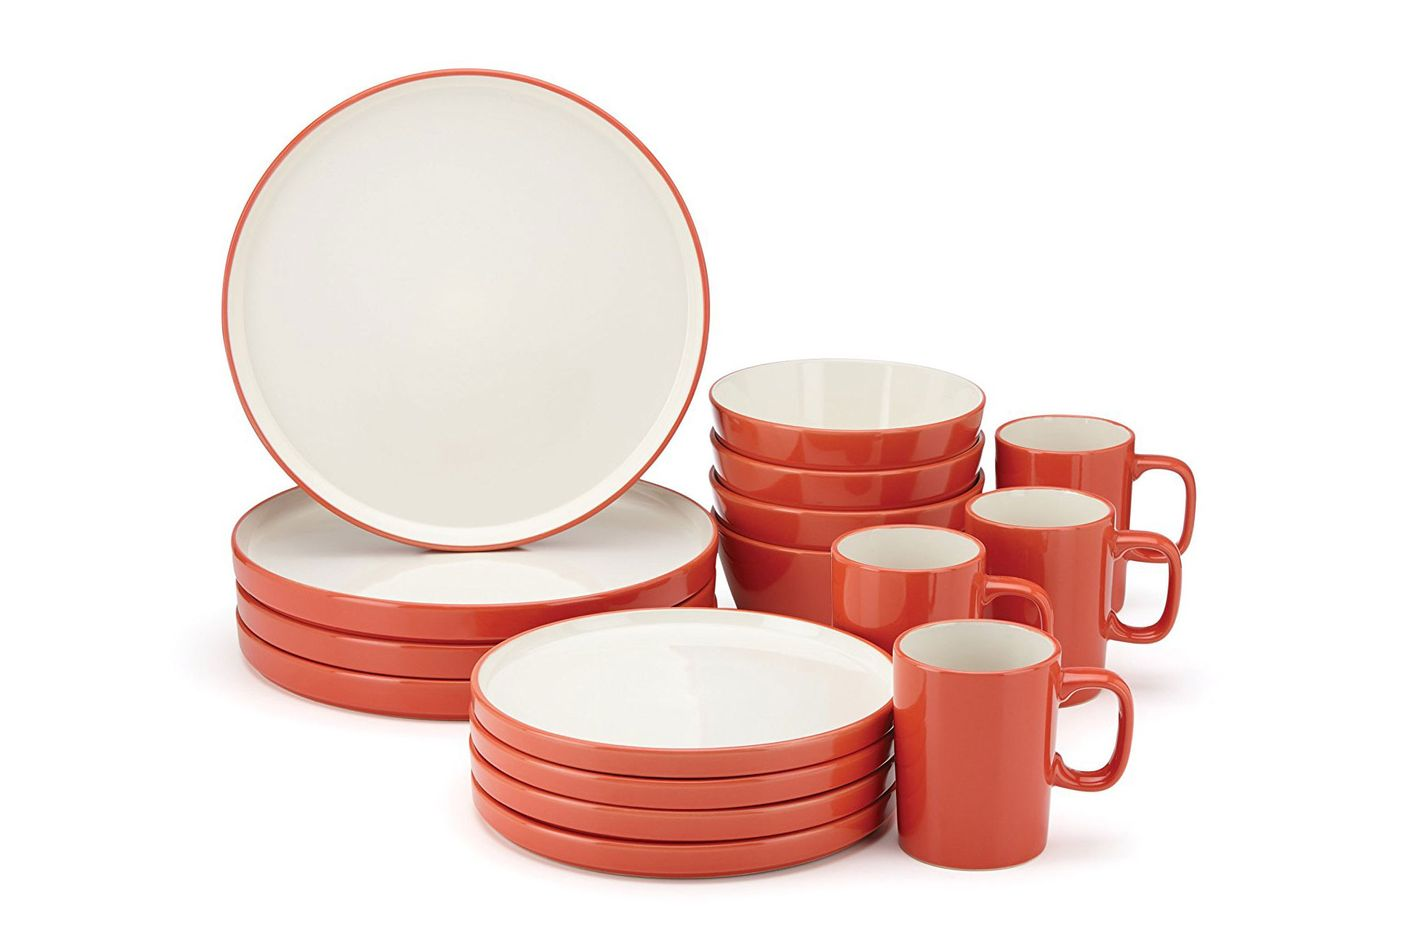 Food U0026 Wine For Gorham Modern Farmhouse 16 Piece Dinnerware Set